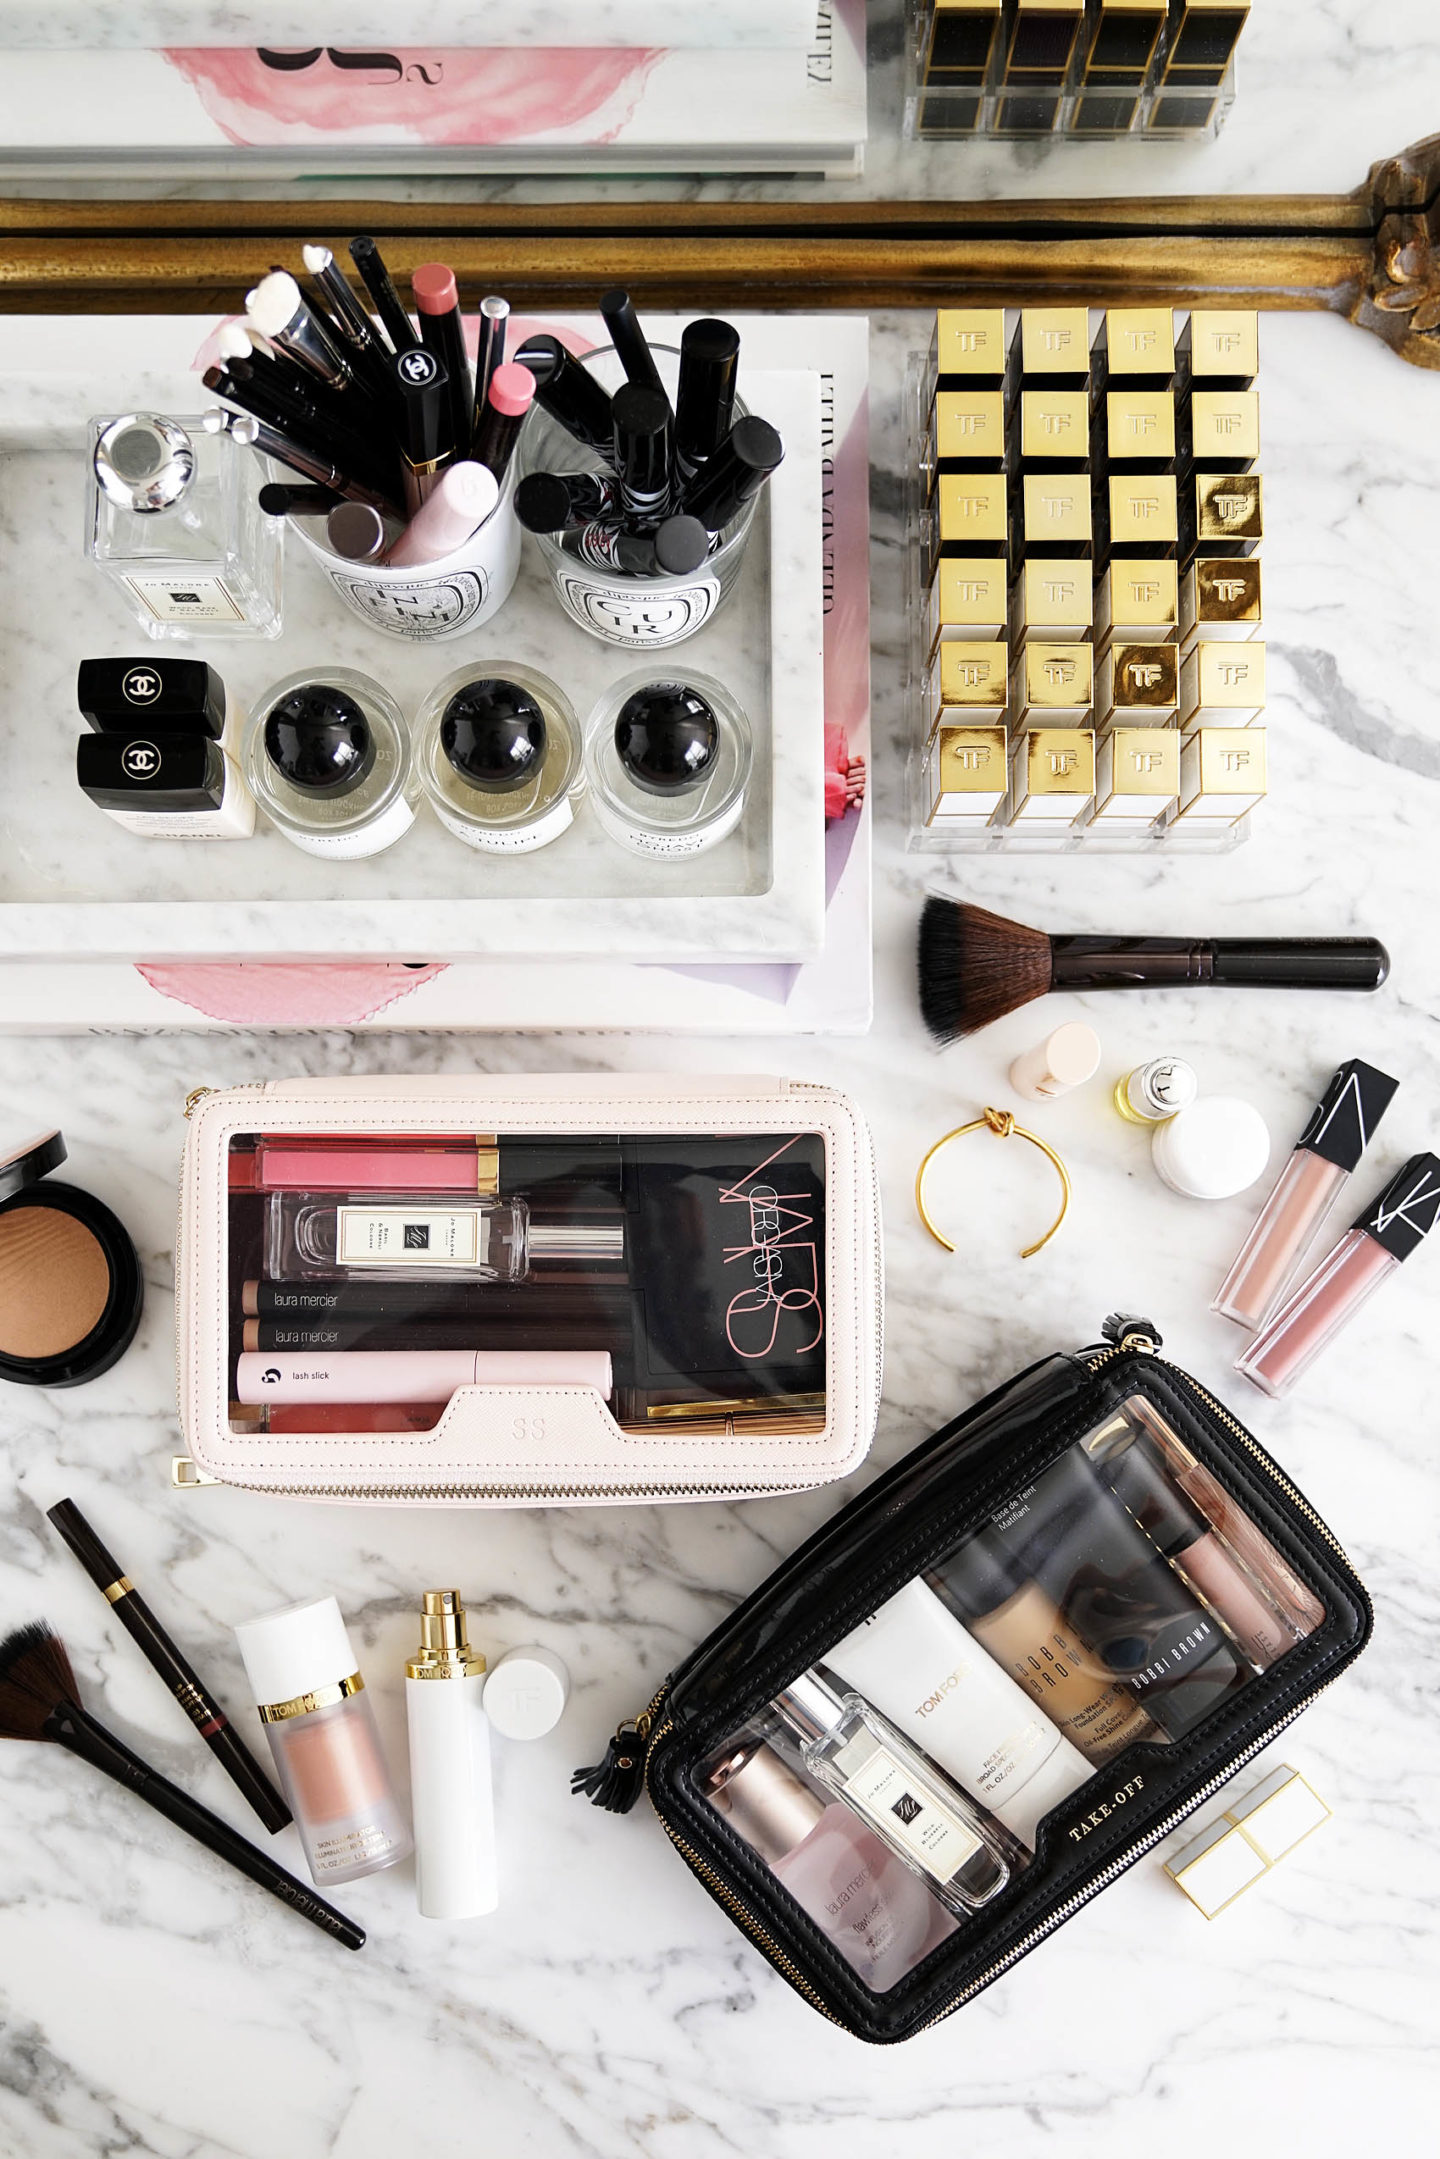 Best Clear Makeup Bags The Daily Edited vs Anya Hindmarch | The Beauty Look Book